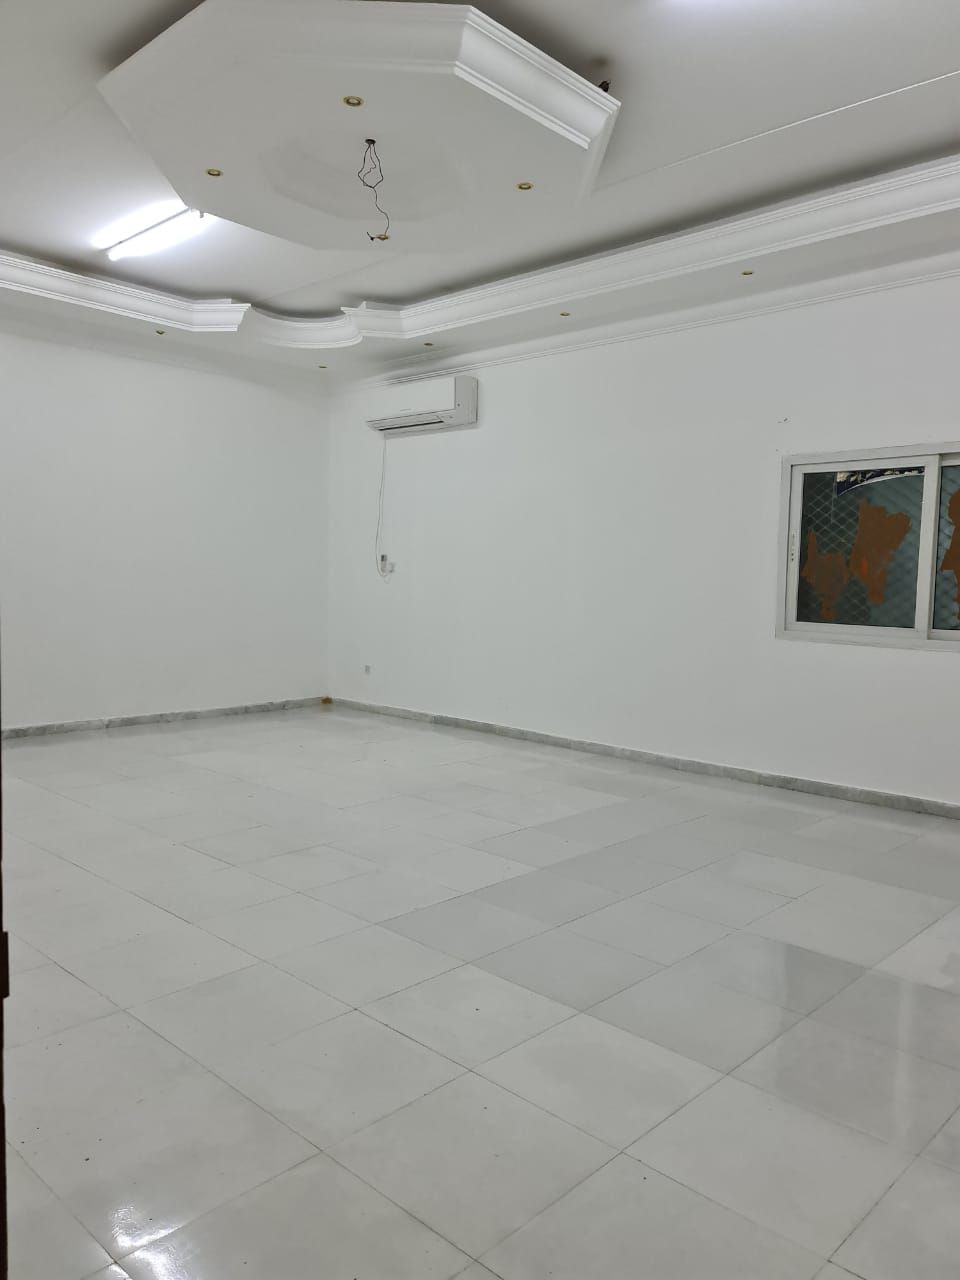 TREMENDOUS BRAND NEW 3 BED ROOM HALL MULHAQ FOR RENT IN AL-SHAMKHAH